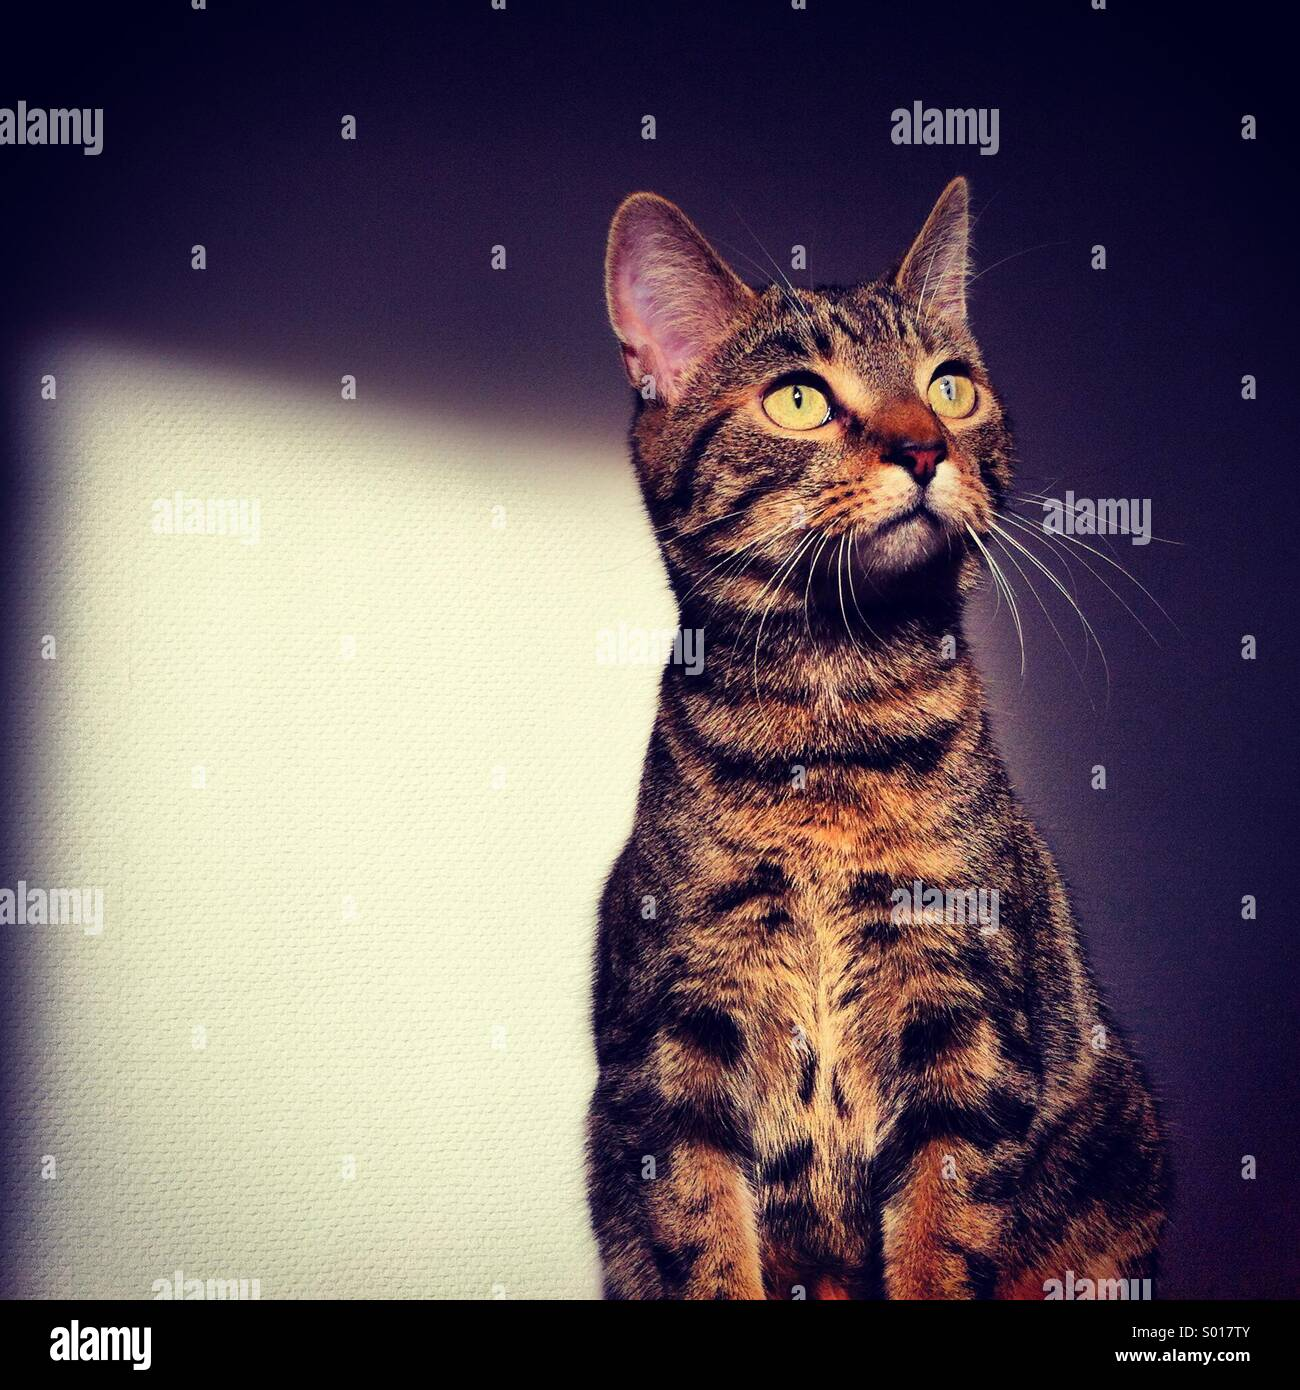 Domesticated young kitten tabby cat pet, sitting alert in sunlight at home. - Stock Image